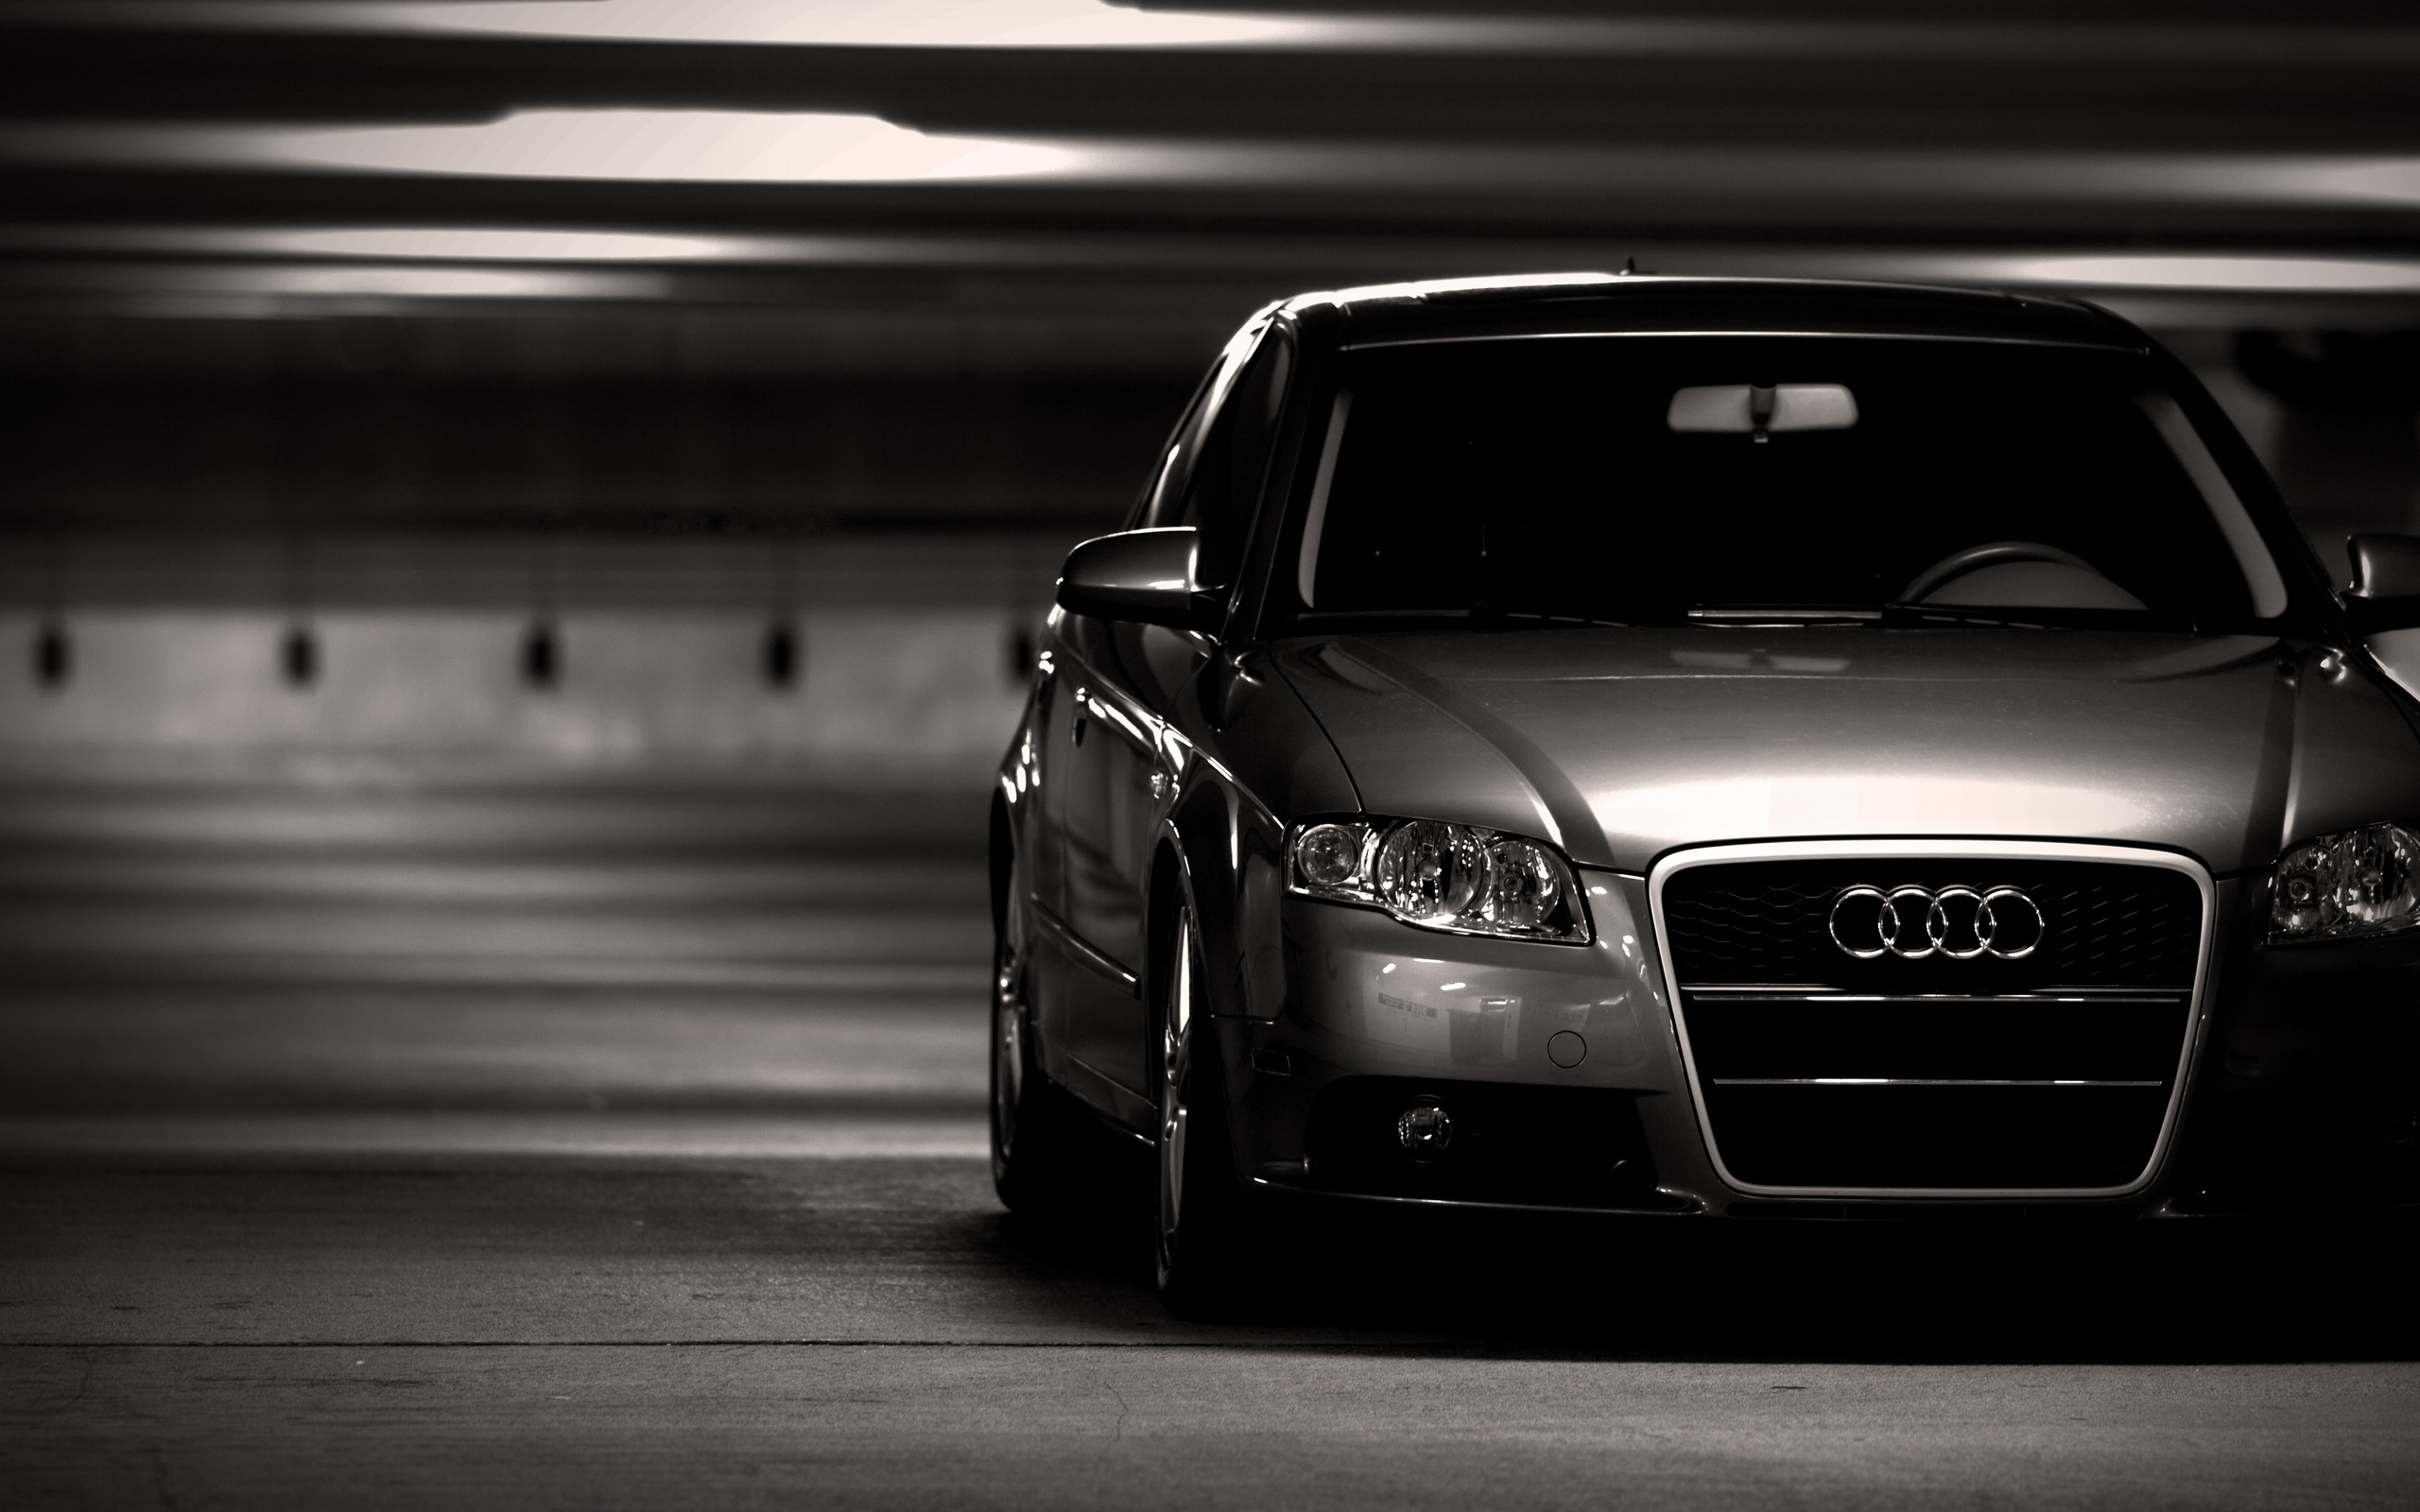 26 audi a4 hd wallpapers background images wallpaper abyss voltagebd Image collections